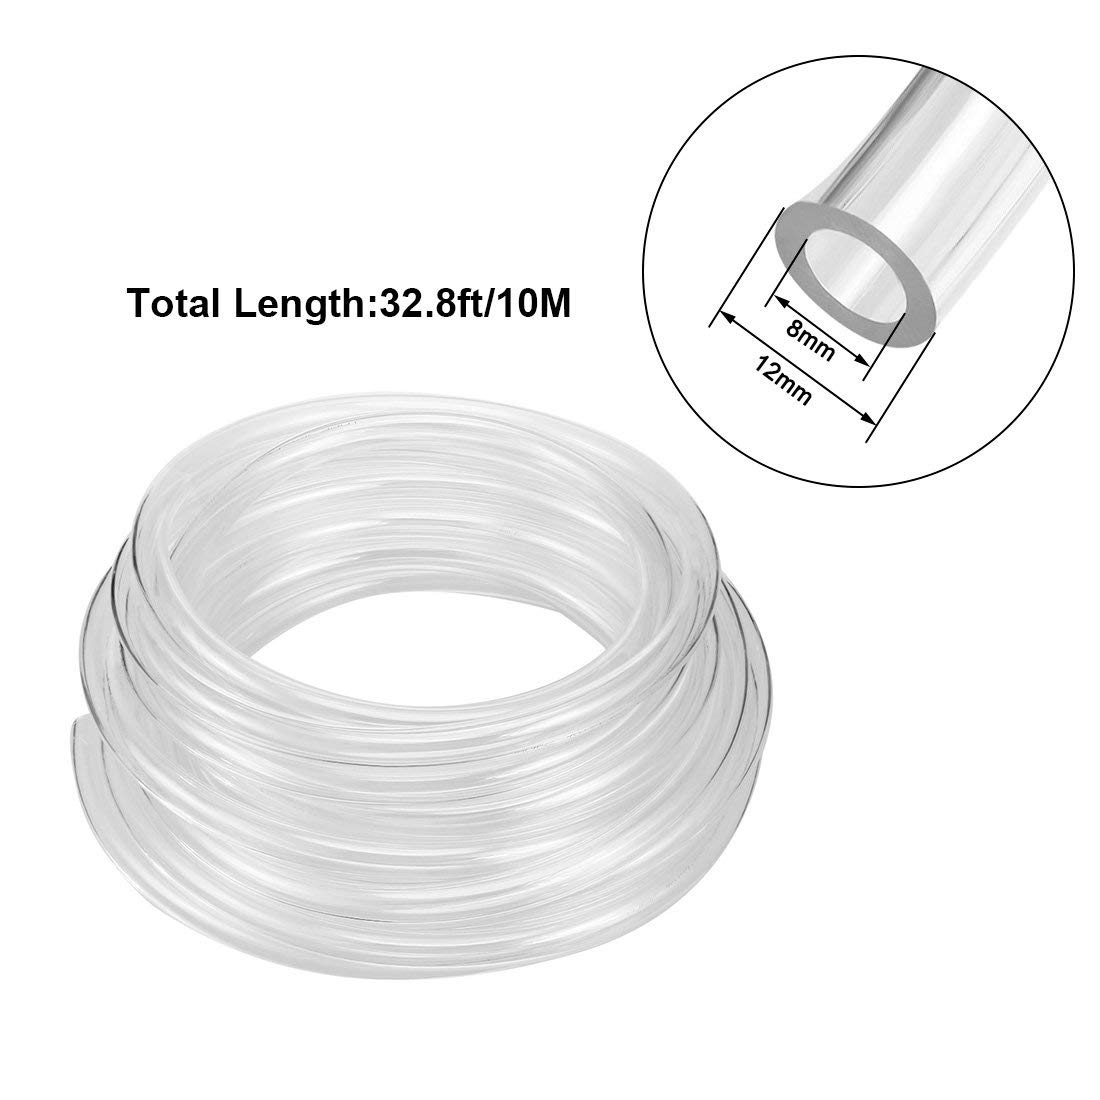 Wholesale 10 Meter 32.8ft 12mm X <font><b>8mm</b></font> Pneumatic Air PU <font><b>Hose</b></font> Pipe Tube Clear Transparent High pressure Pneumatic Component <font><b>Hose</b></font> image